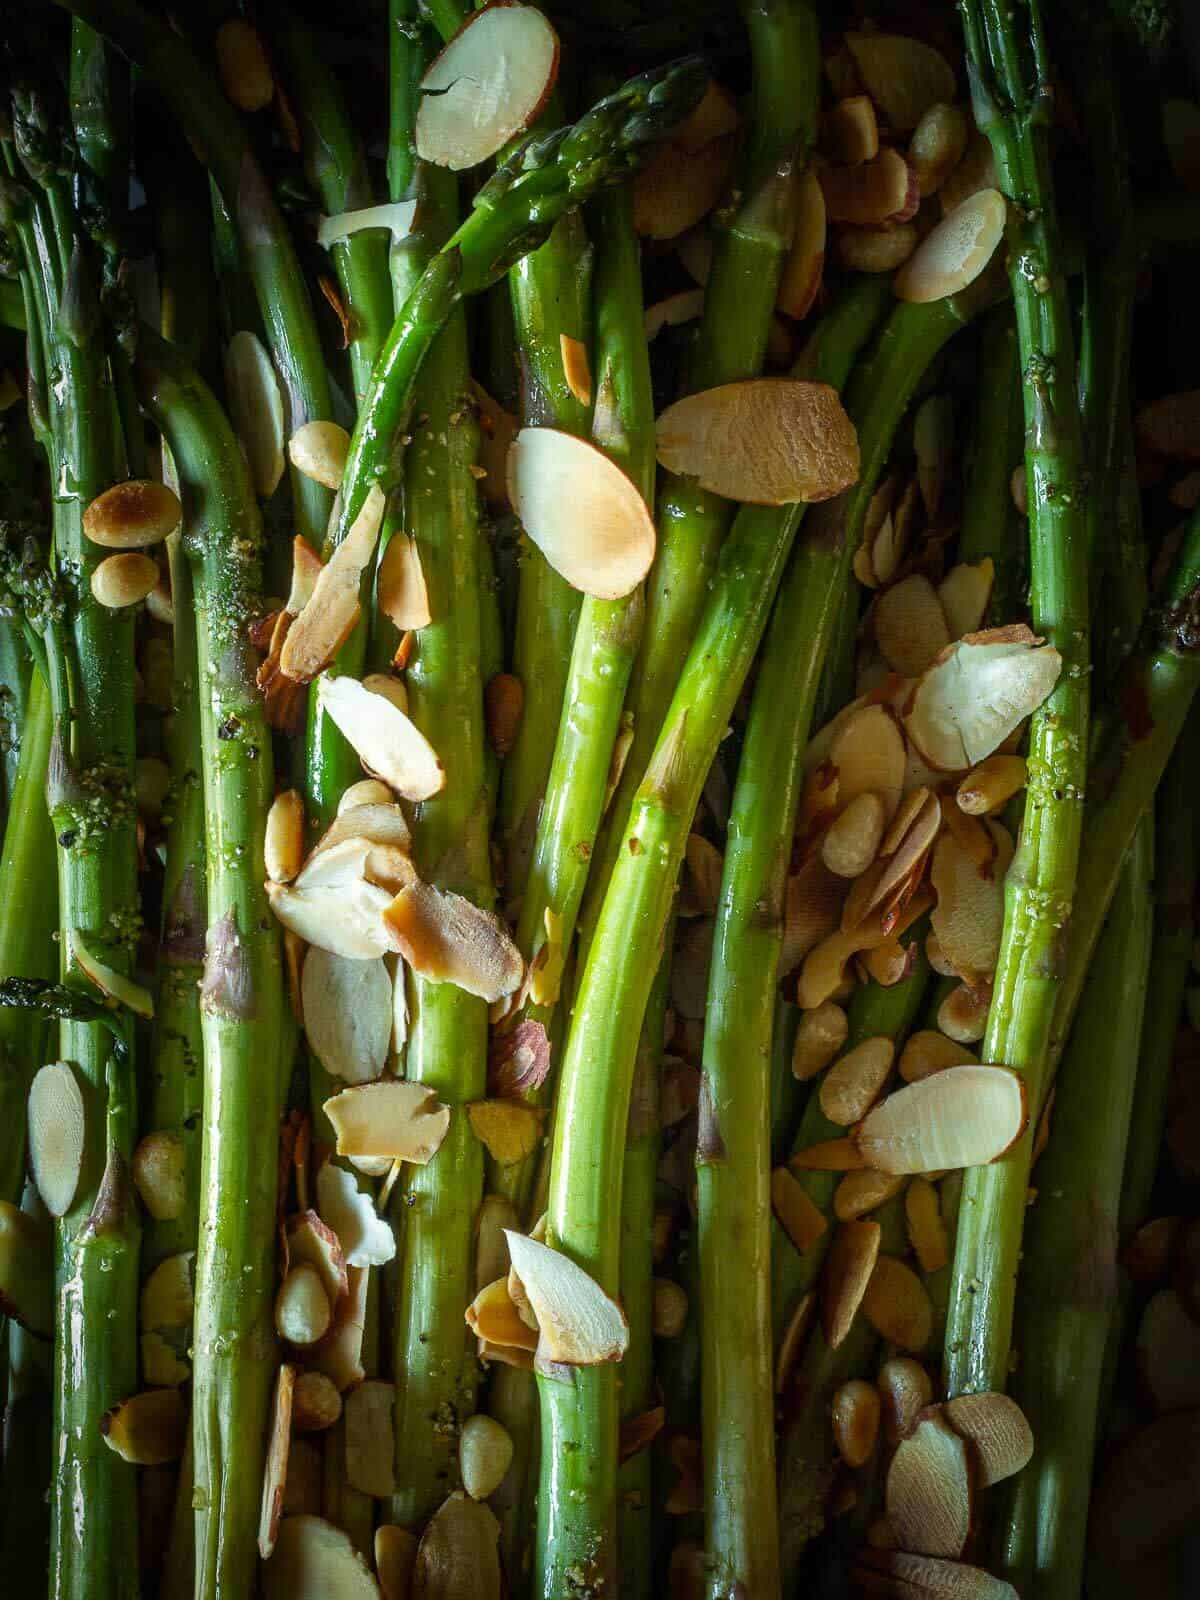 Grilled Asparagus with almonds